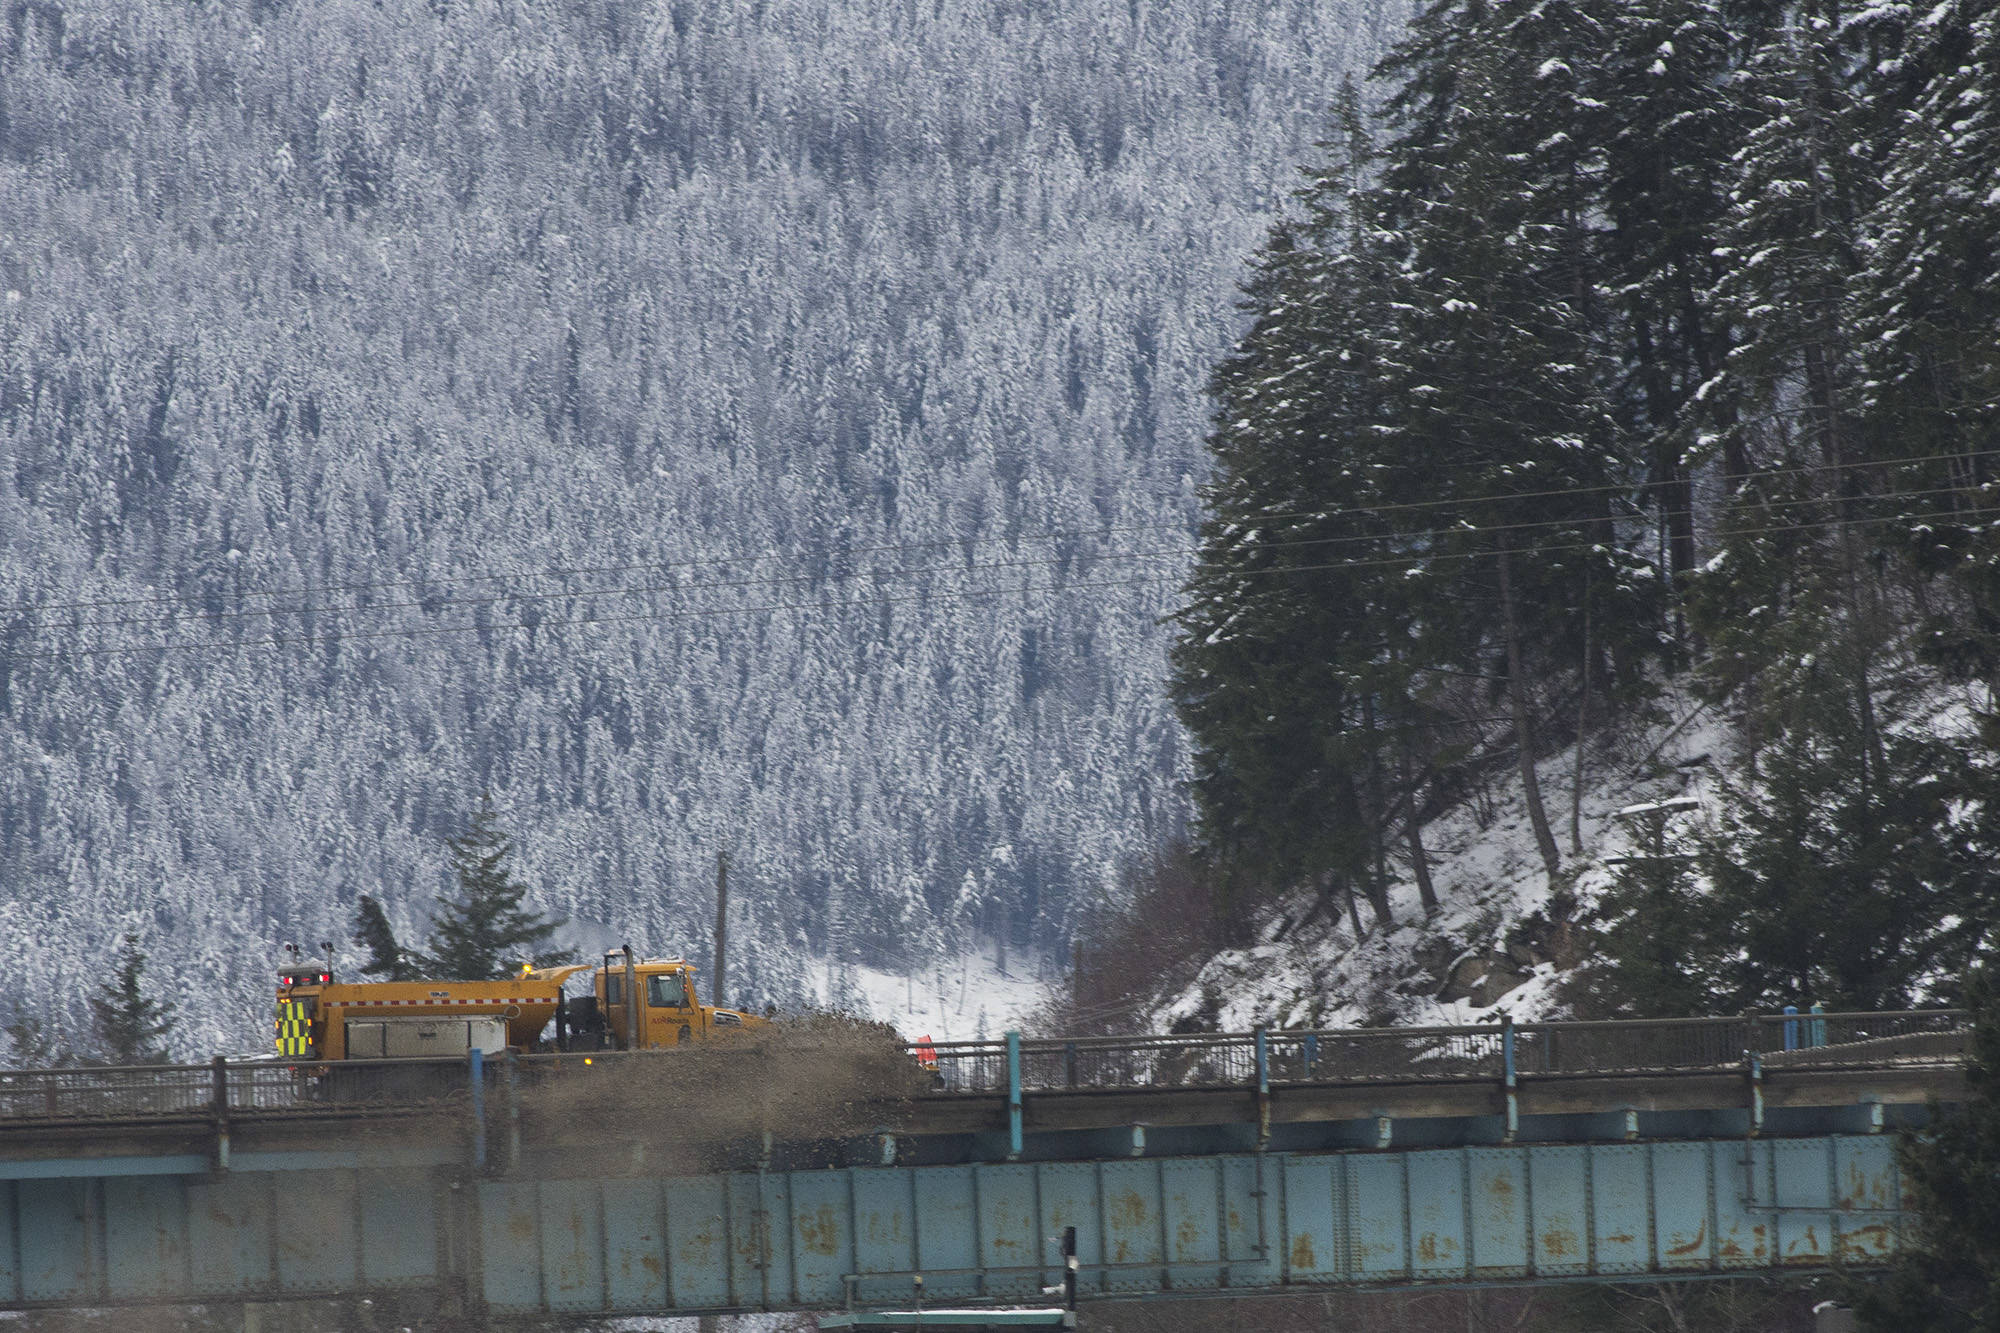 A winter storm warning is in effect for the Trans-Canada Highway from Eagle Pass to Rogers Pass on Friday, Jan. 1. (Jim Elliot/Eagle Valley News)